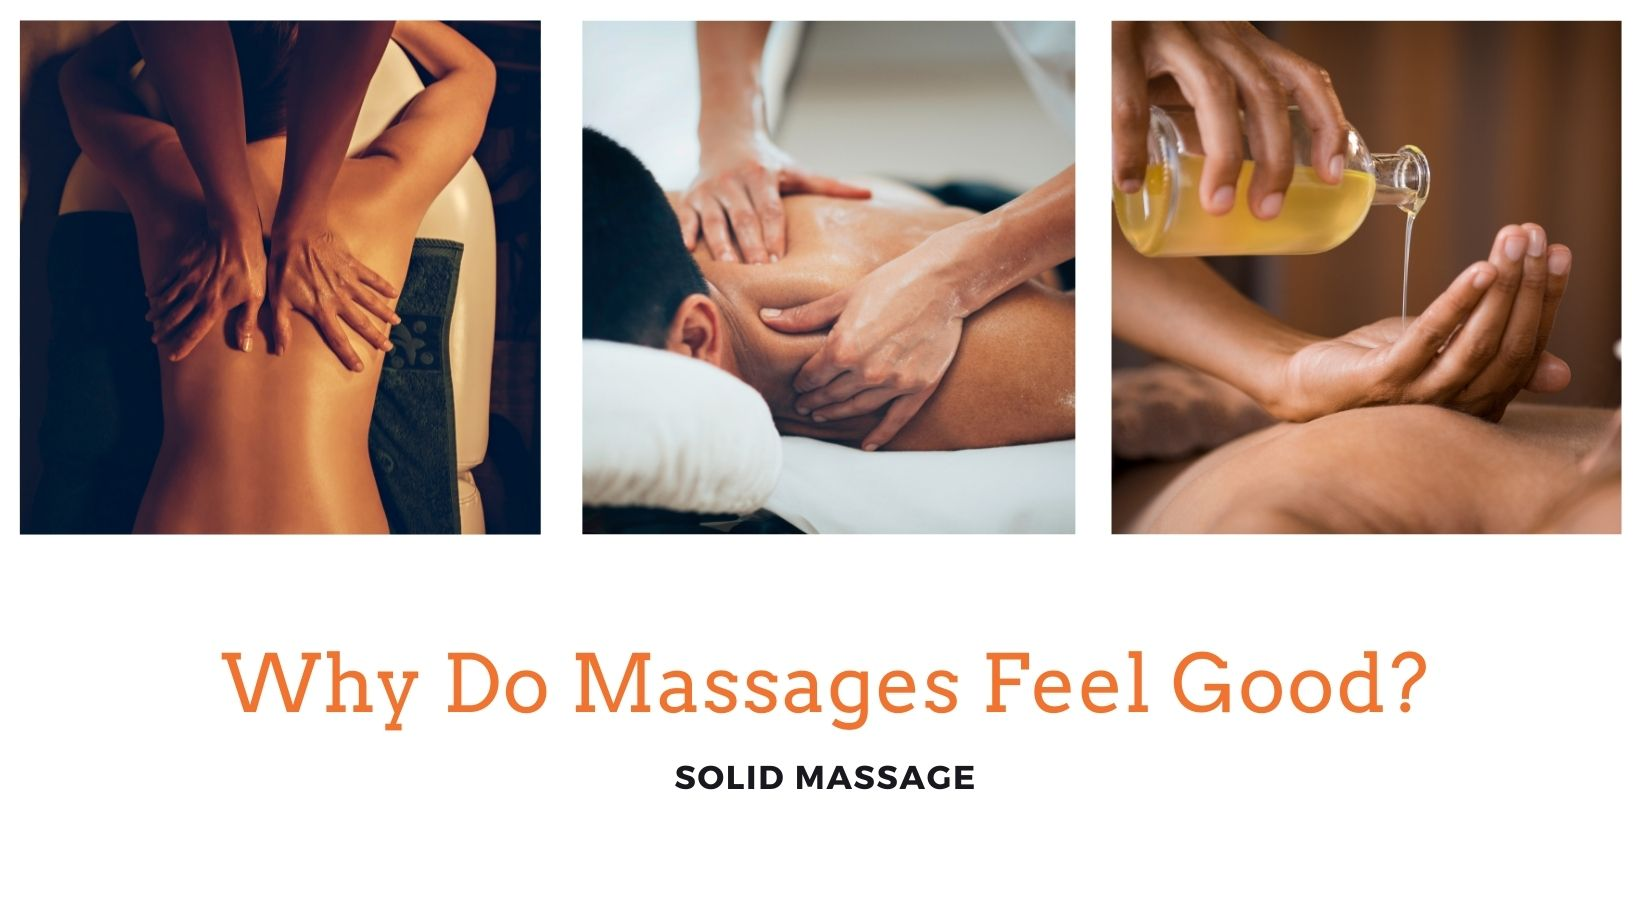 Why Do Massages Feel Good